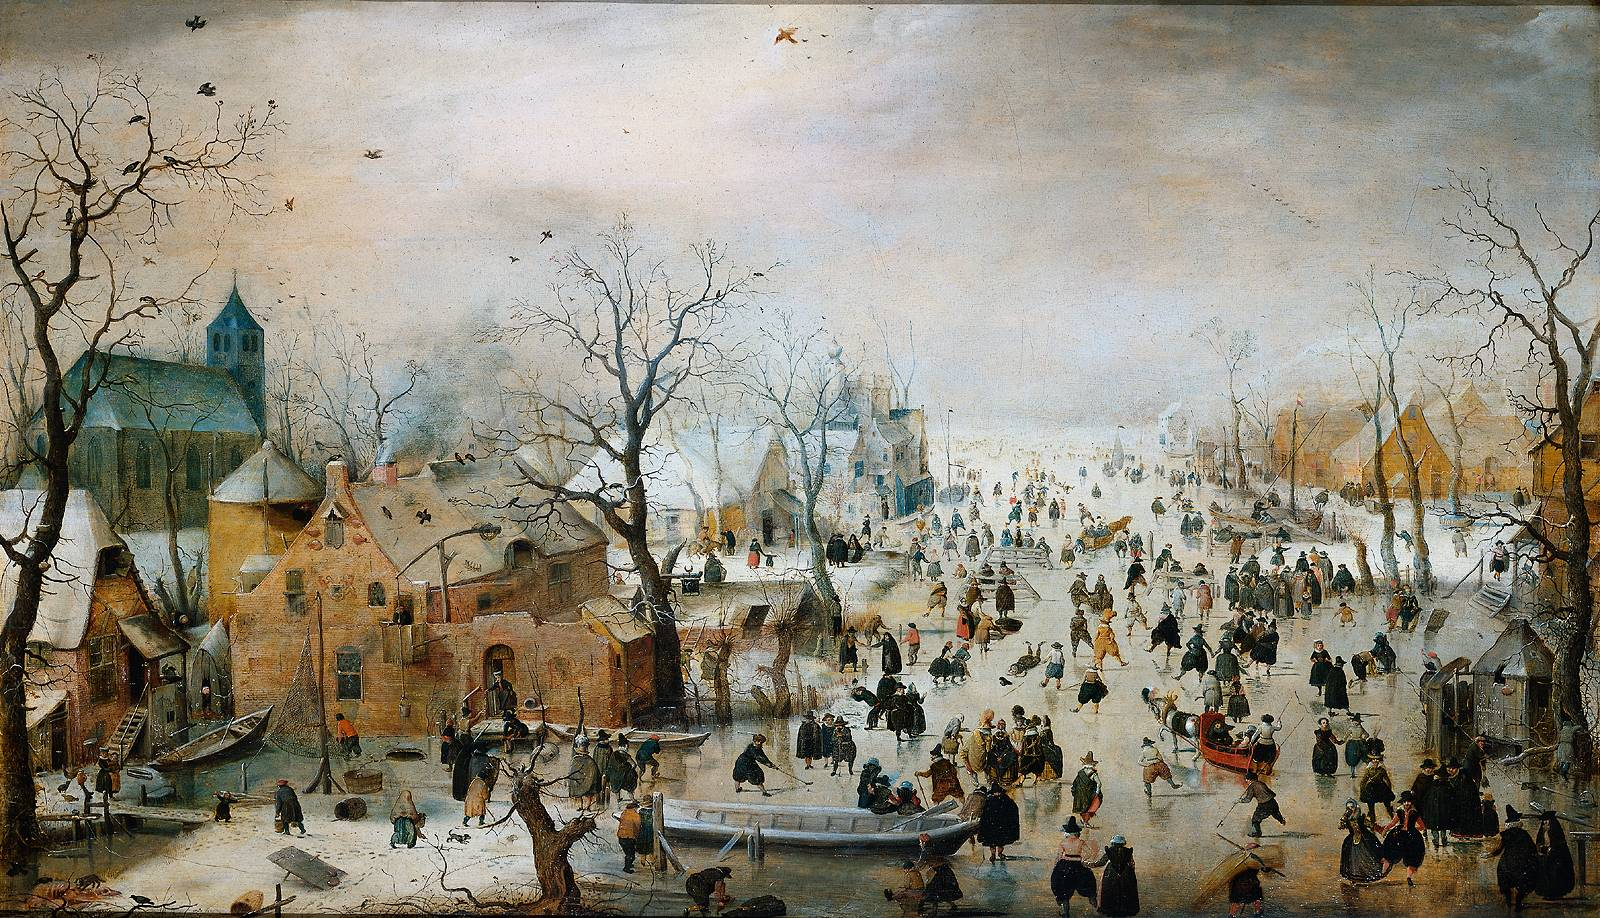 http://www.ibiblio.org/wm/paint/auth/avercamp/rijks-winter-landscape/rijks-winter-landscape.jpg